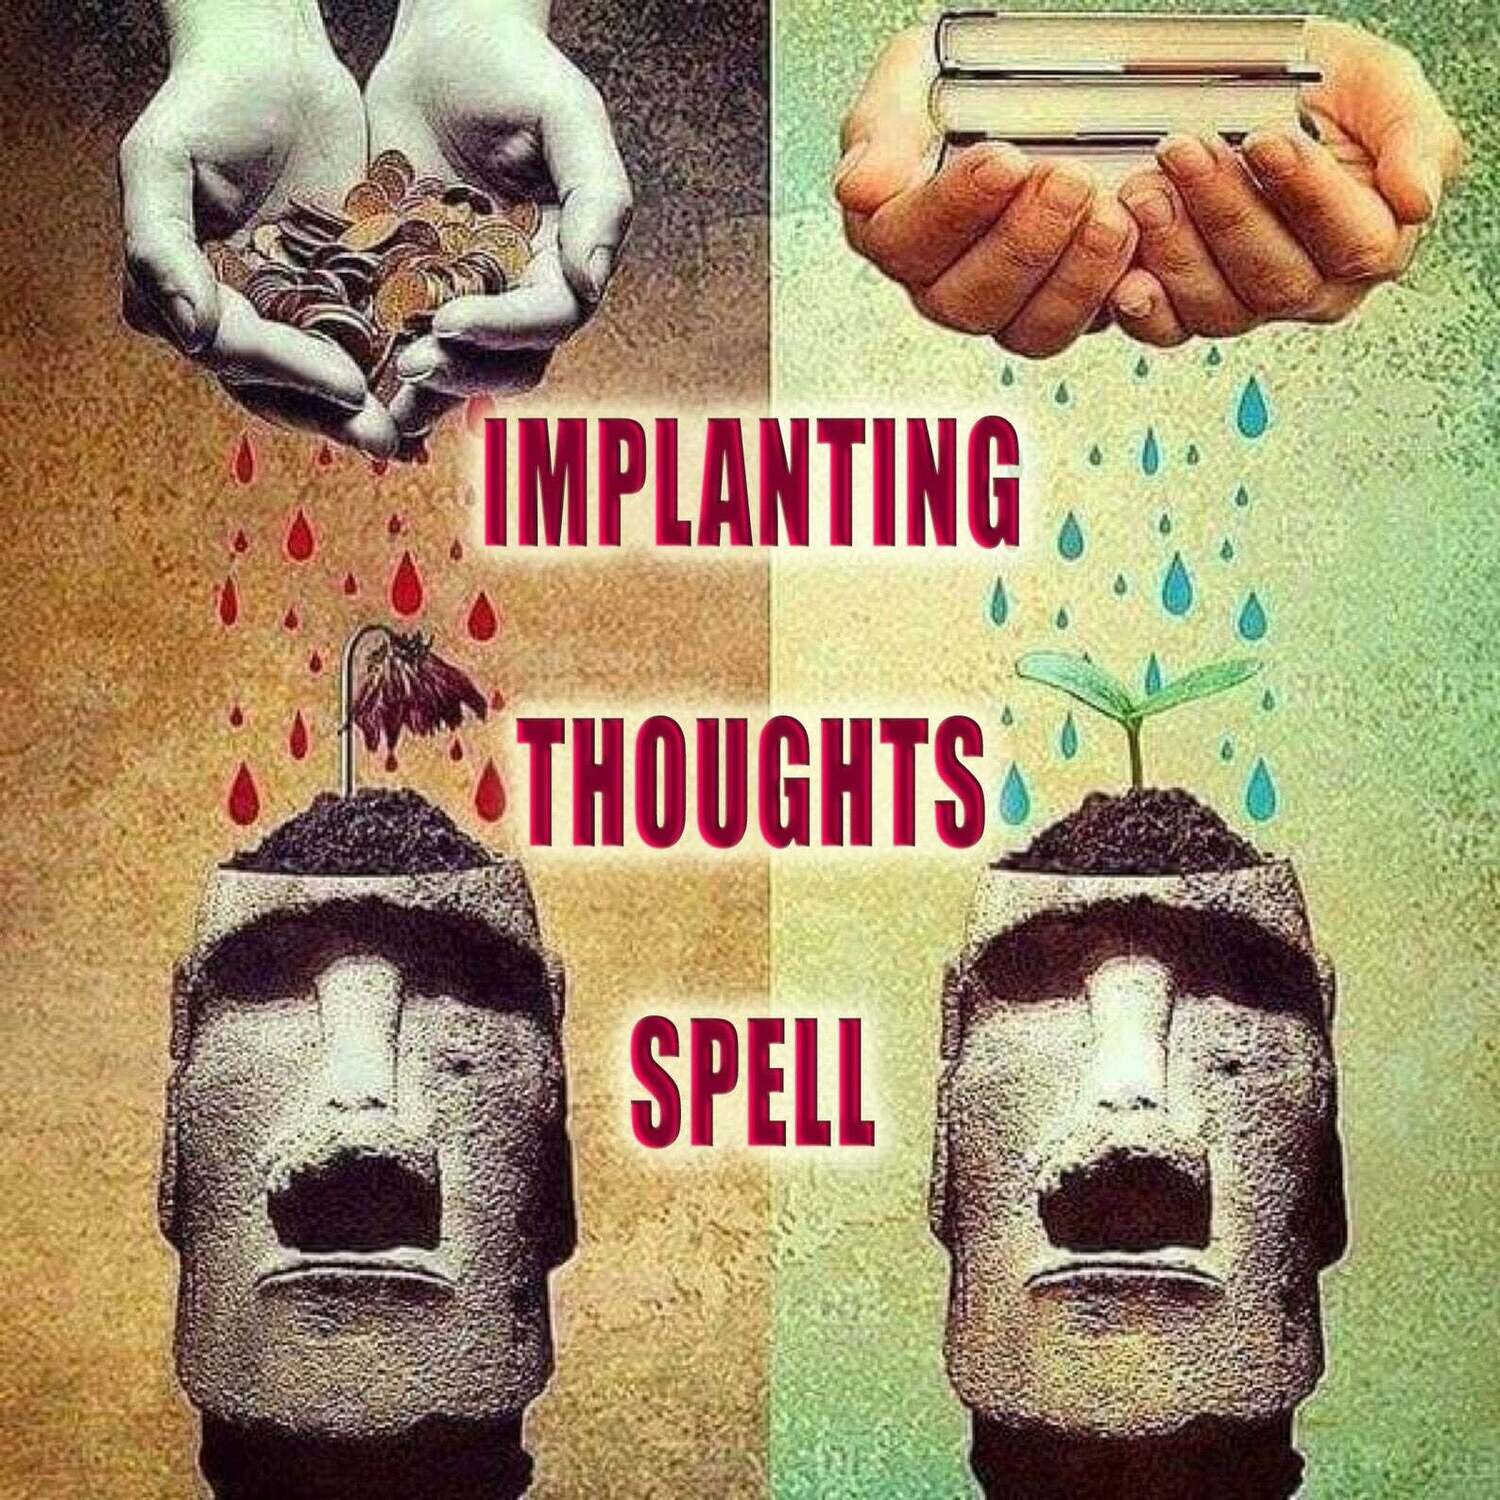 Implanting Thoughts Spell